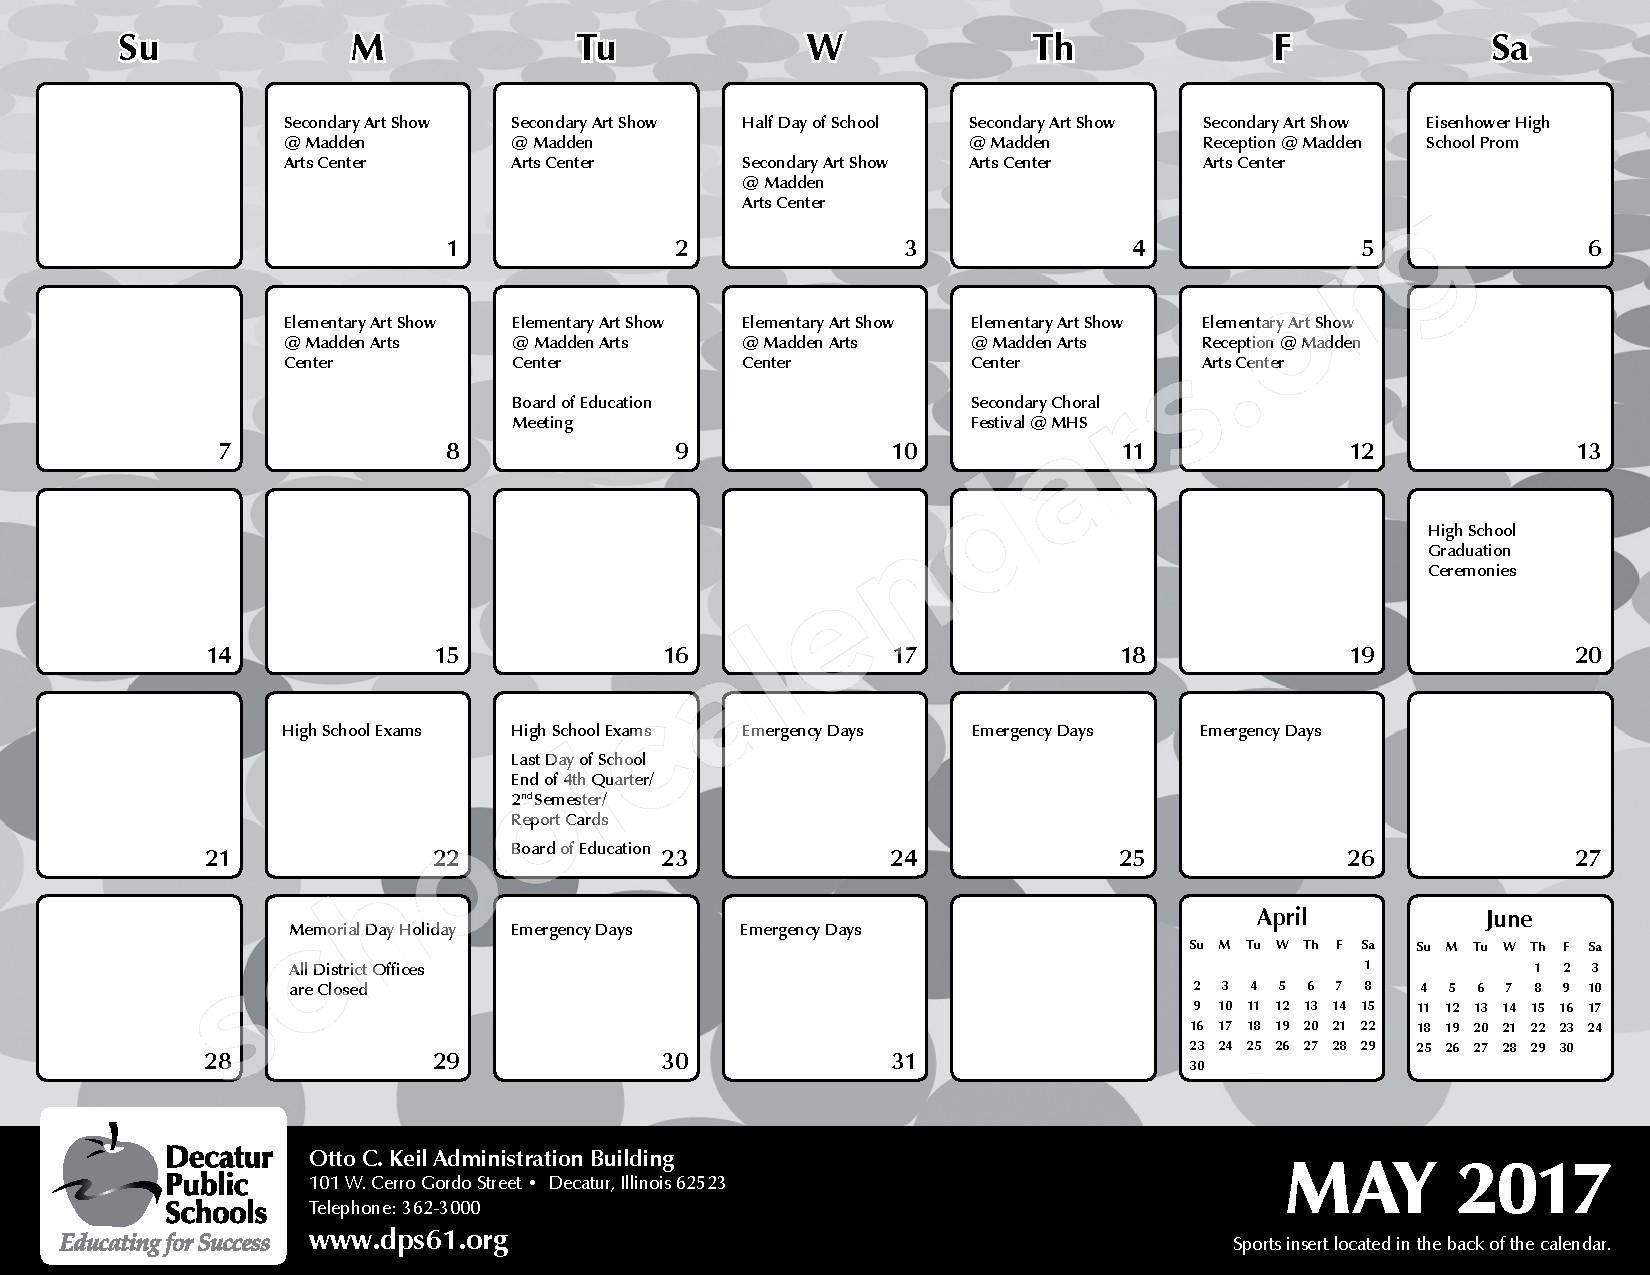 2016 - 2017 District Calendar – Michael E Baum Elementary School – page 23